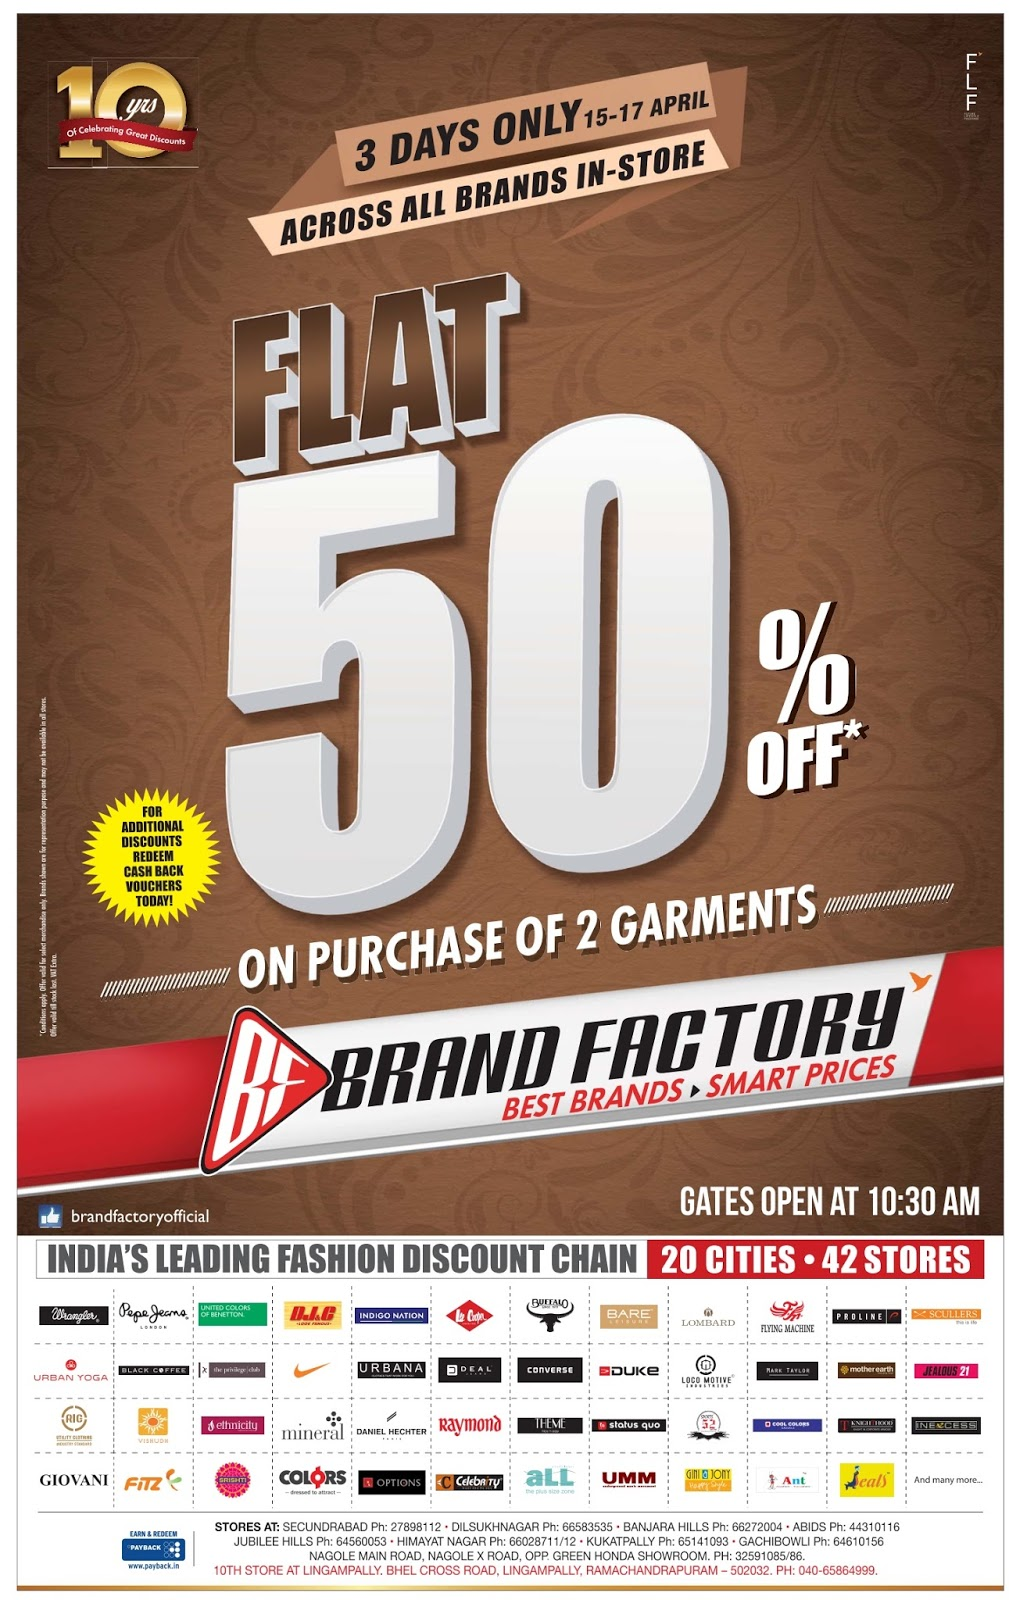 Flat 50% offer in Brand factory | 3 days only | April 2016 discount offer | Festival offers